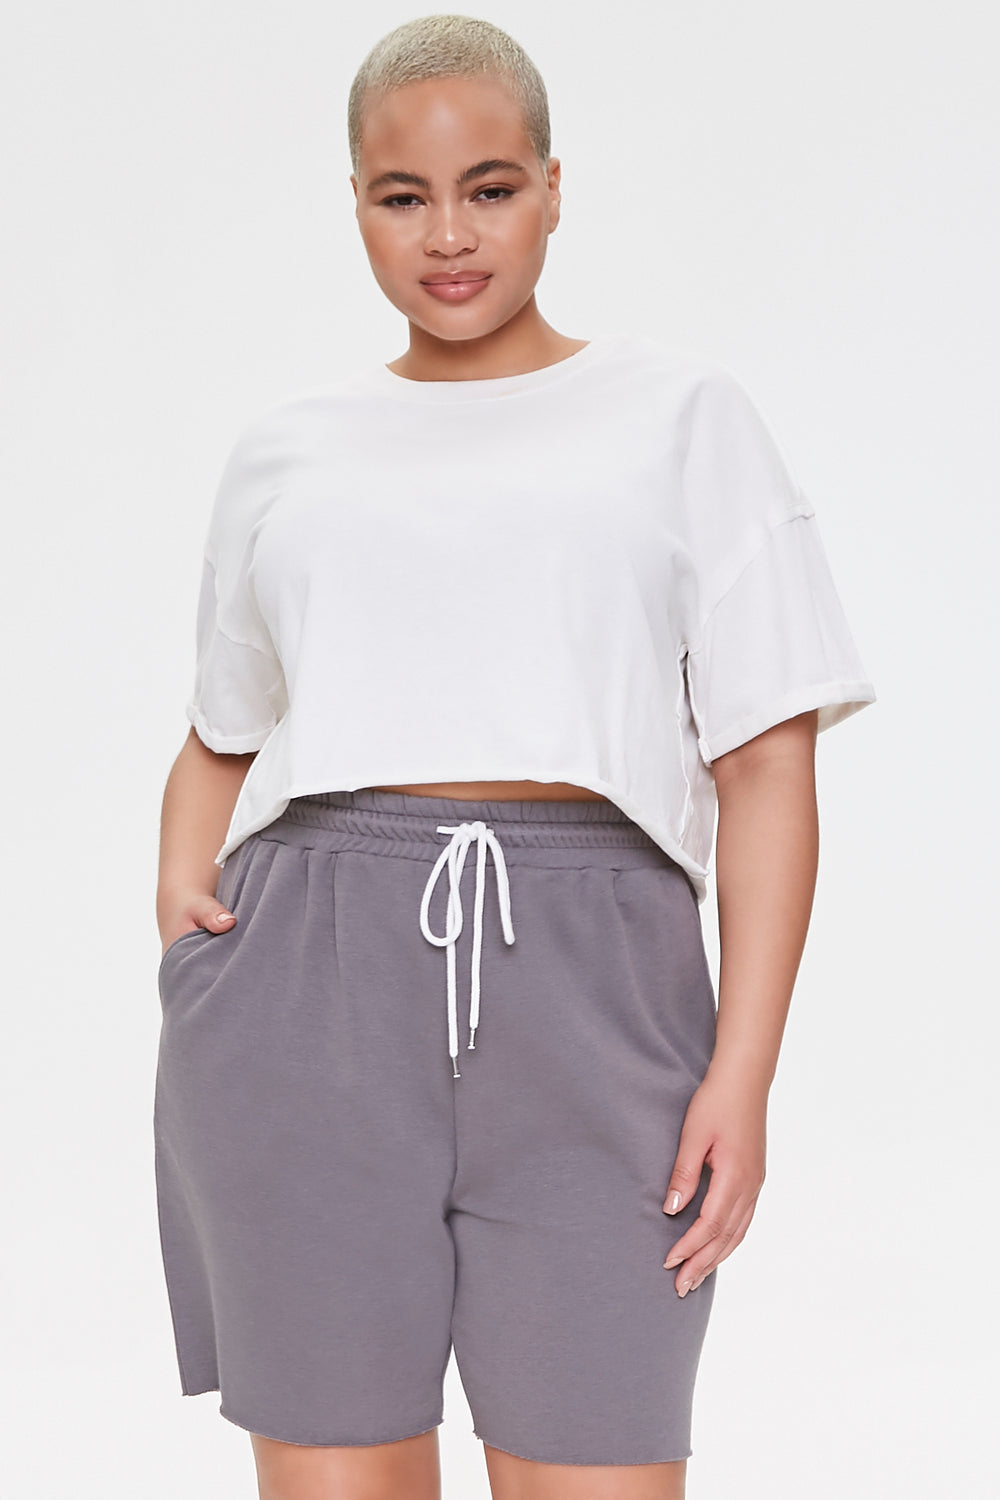 Plus Size Boyfriend Sweatshorts Charcoal